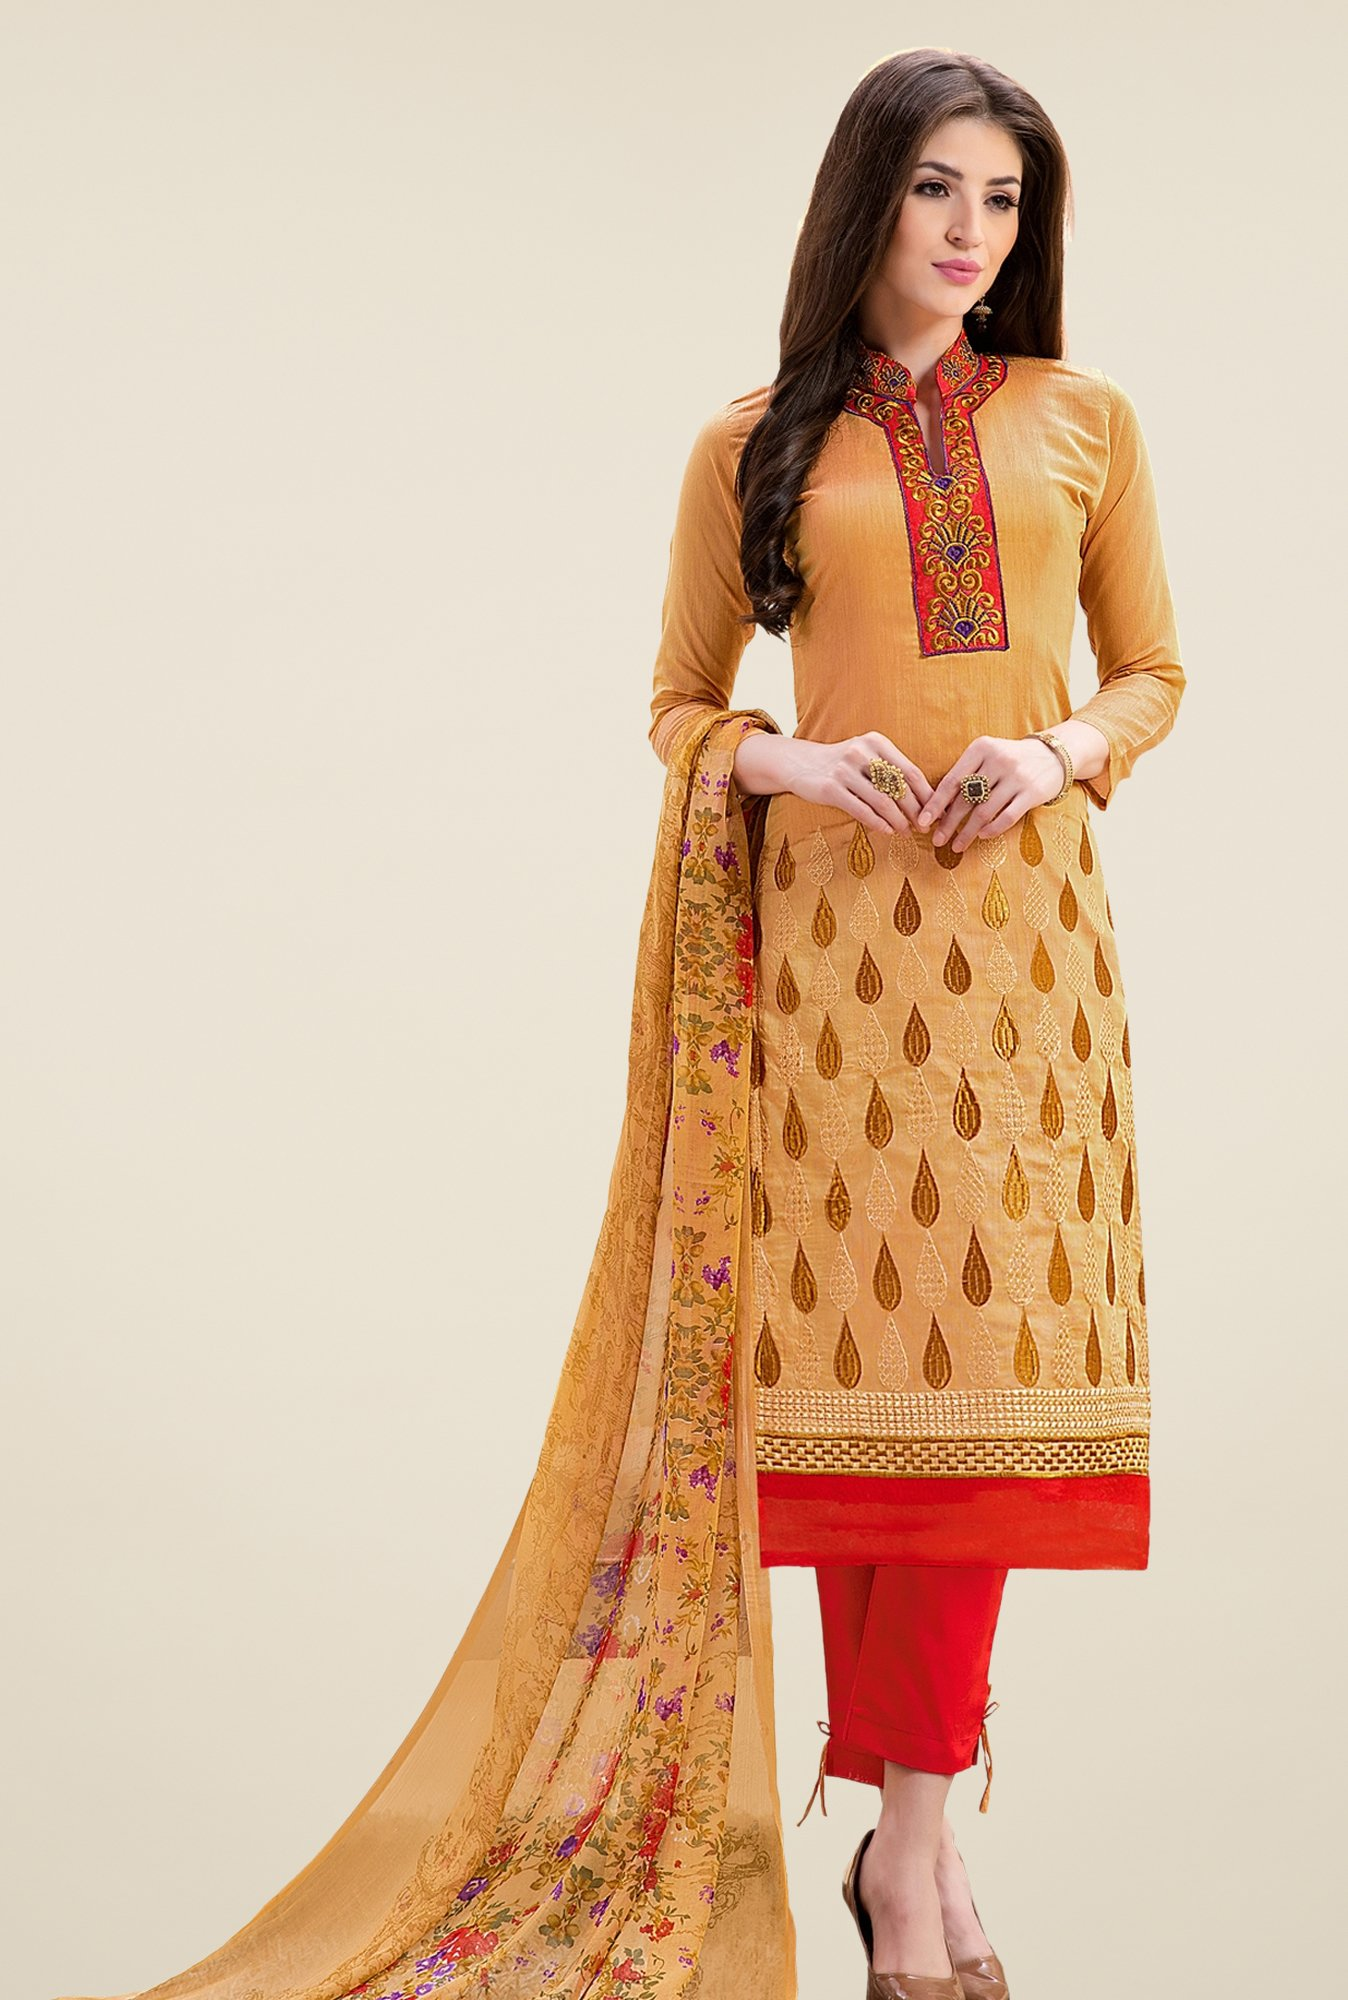 Triveni Amiable Yellow & Red Chanderi Cotton Dress Material